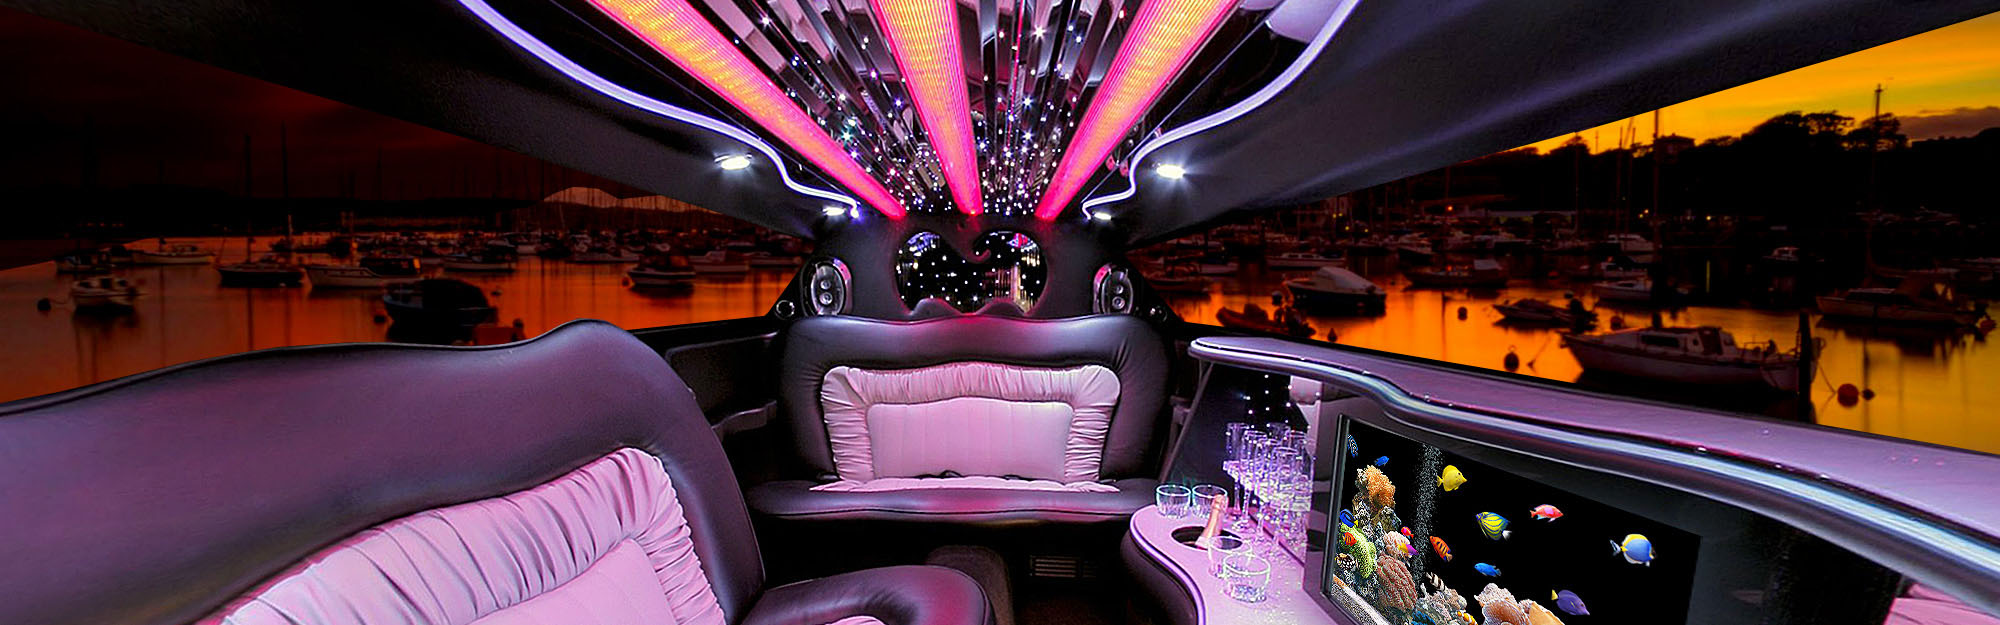 exotic limo background.jpg